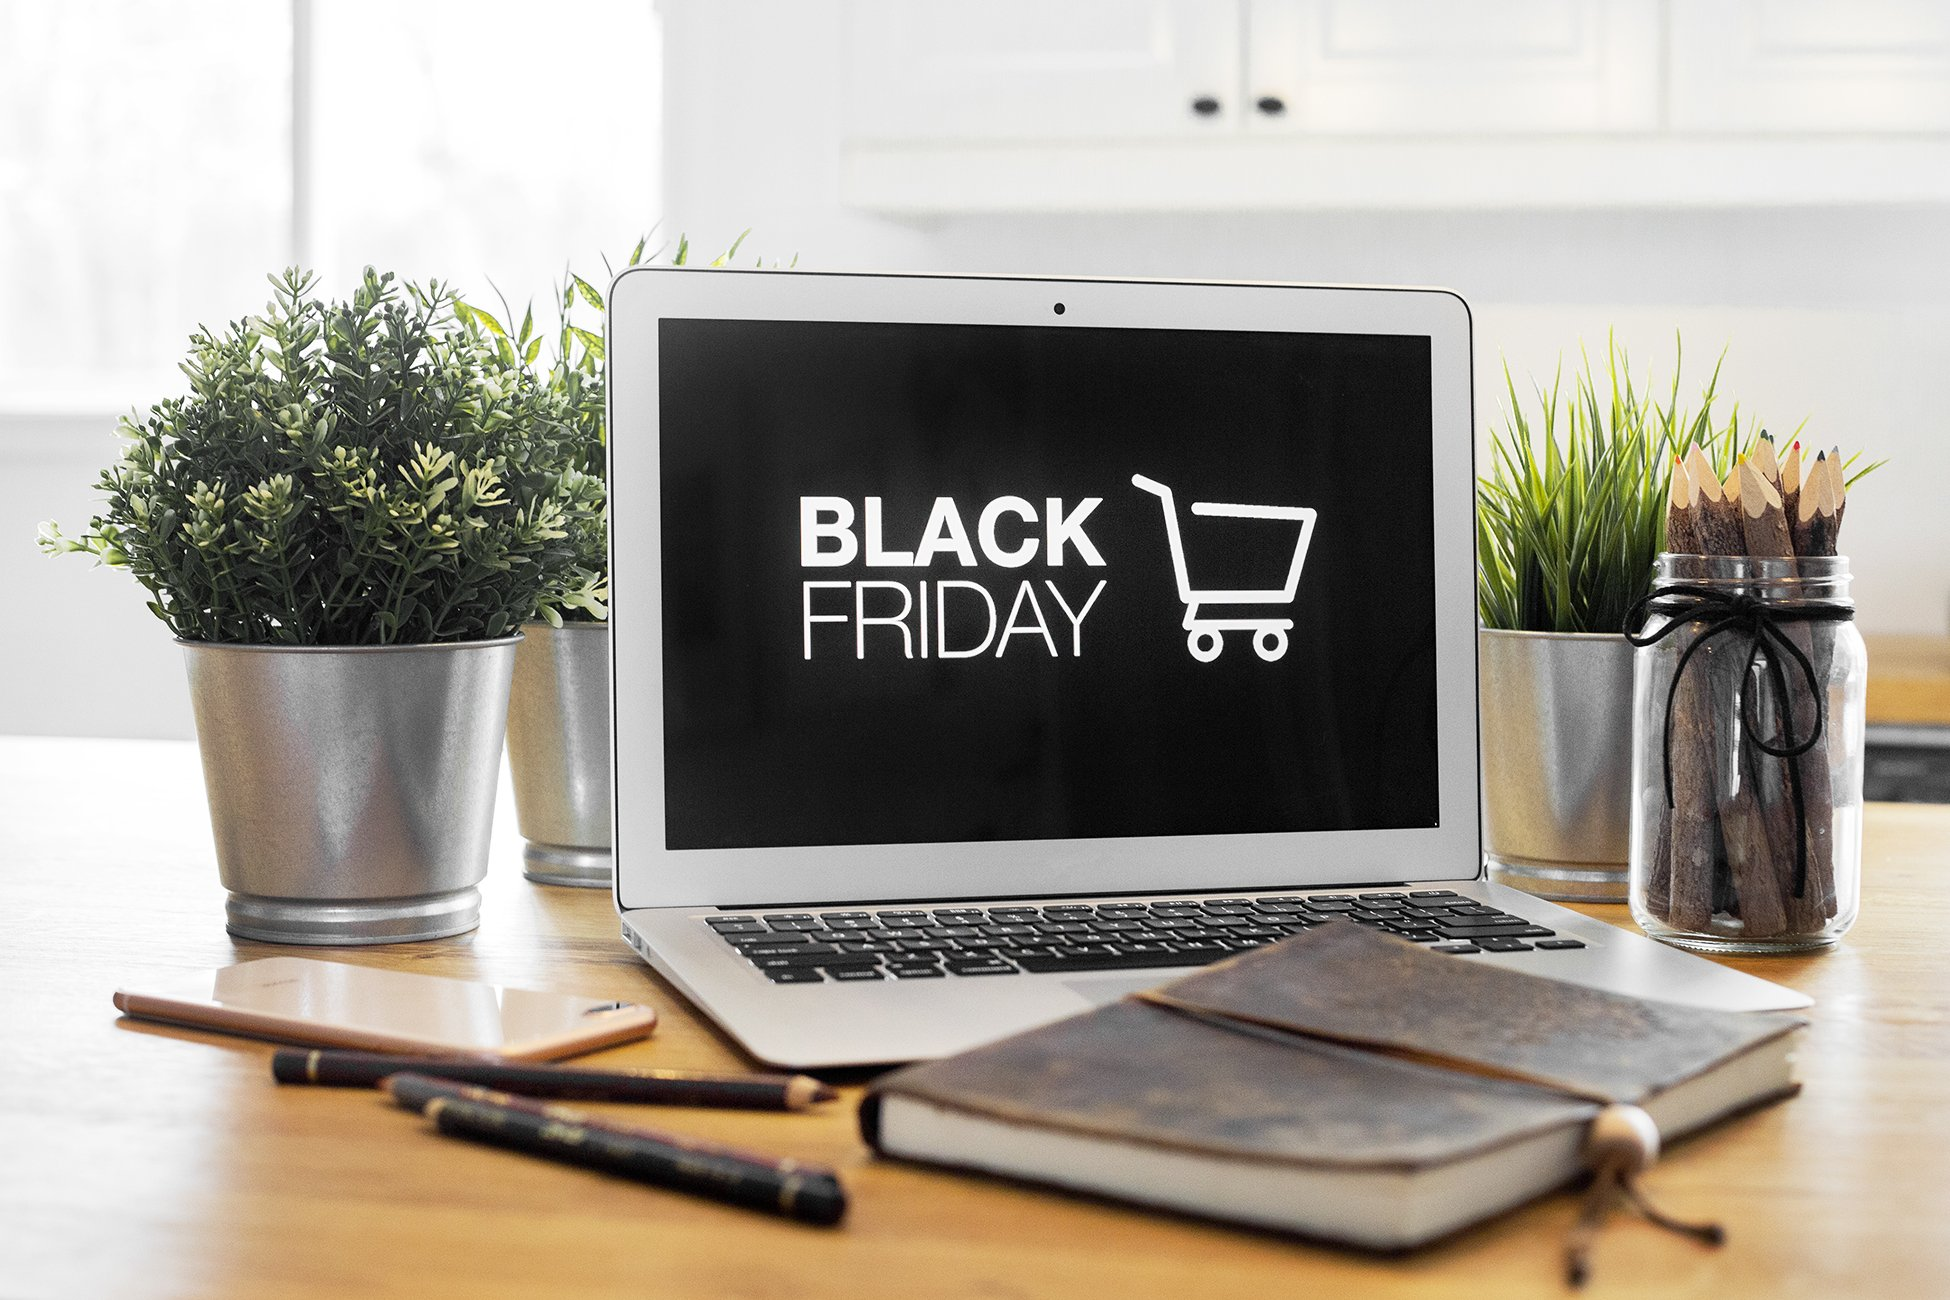 Black Friday e Cyber Monday, i numeri di MagNews